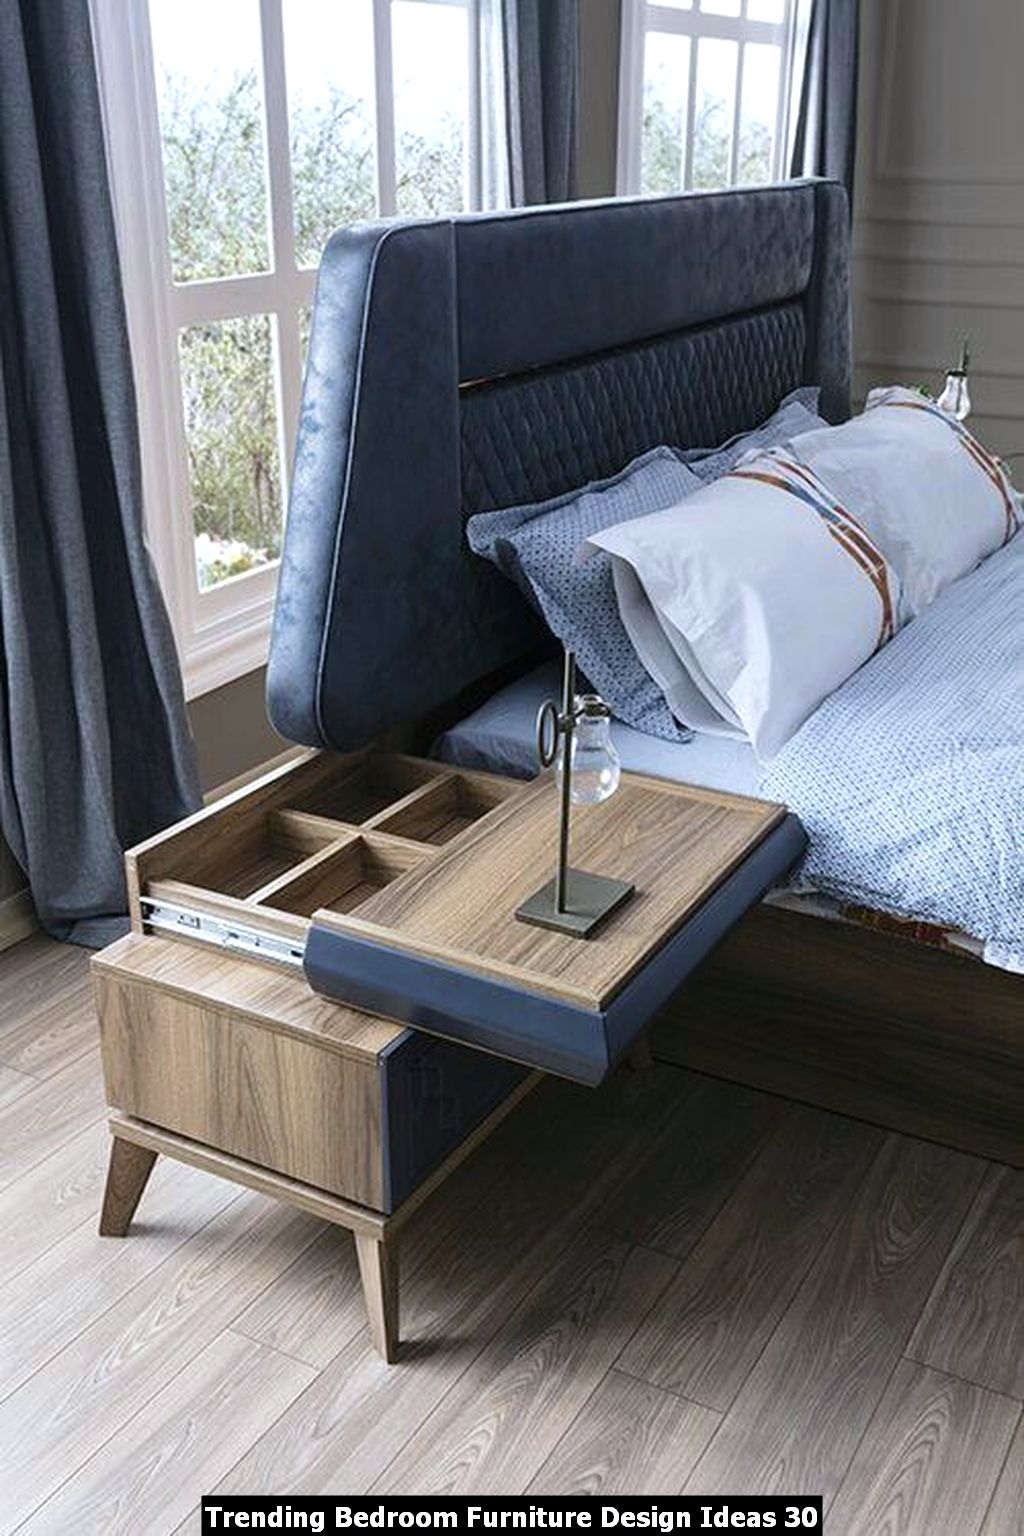 Trending Bedroom Furniture Design Ideas 30